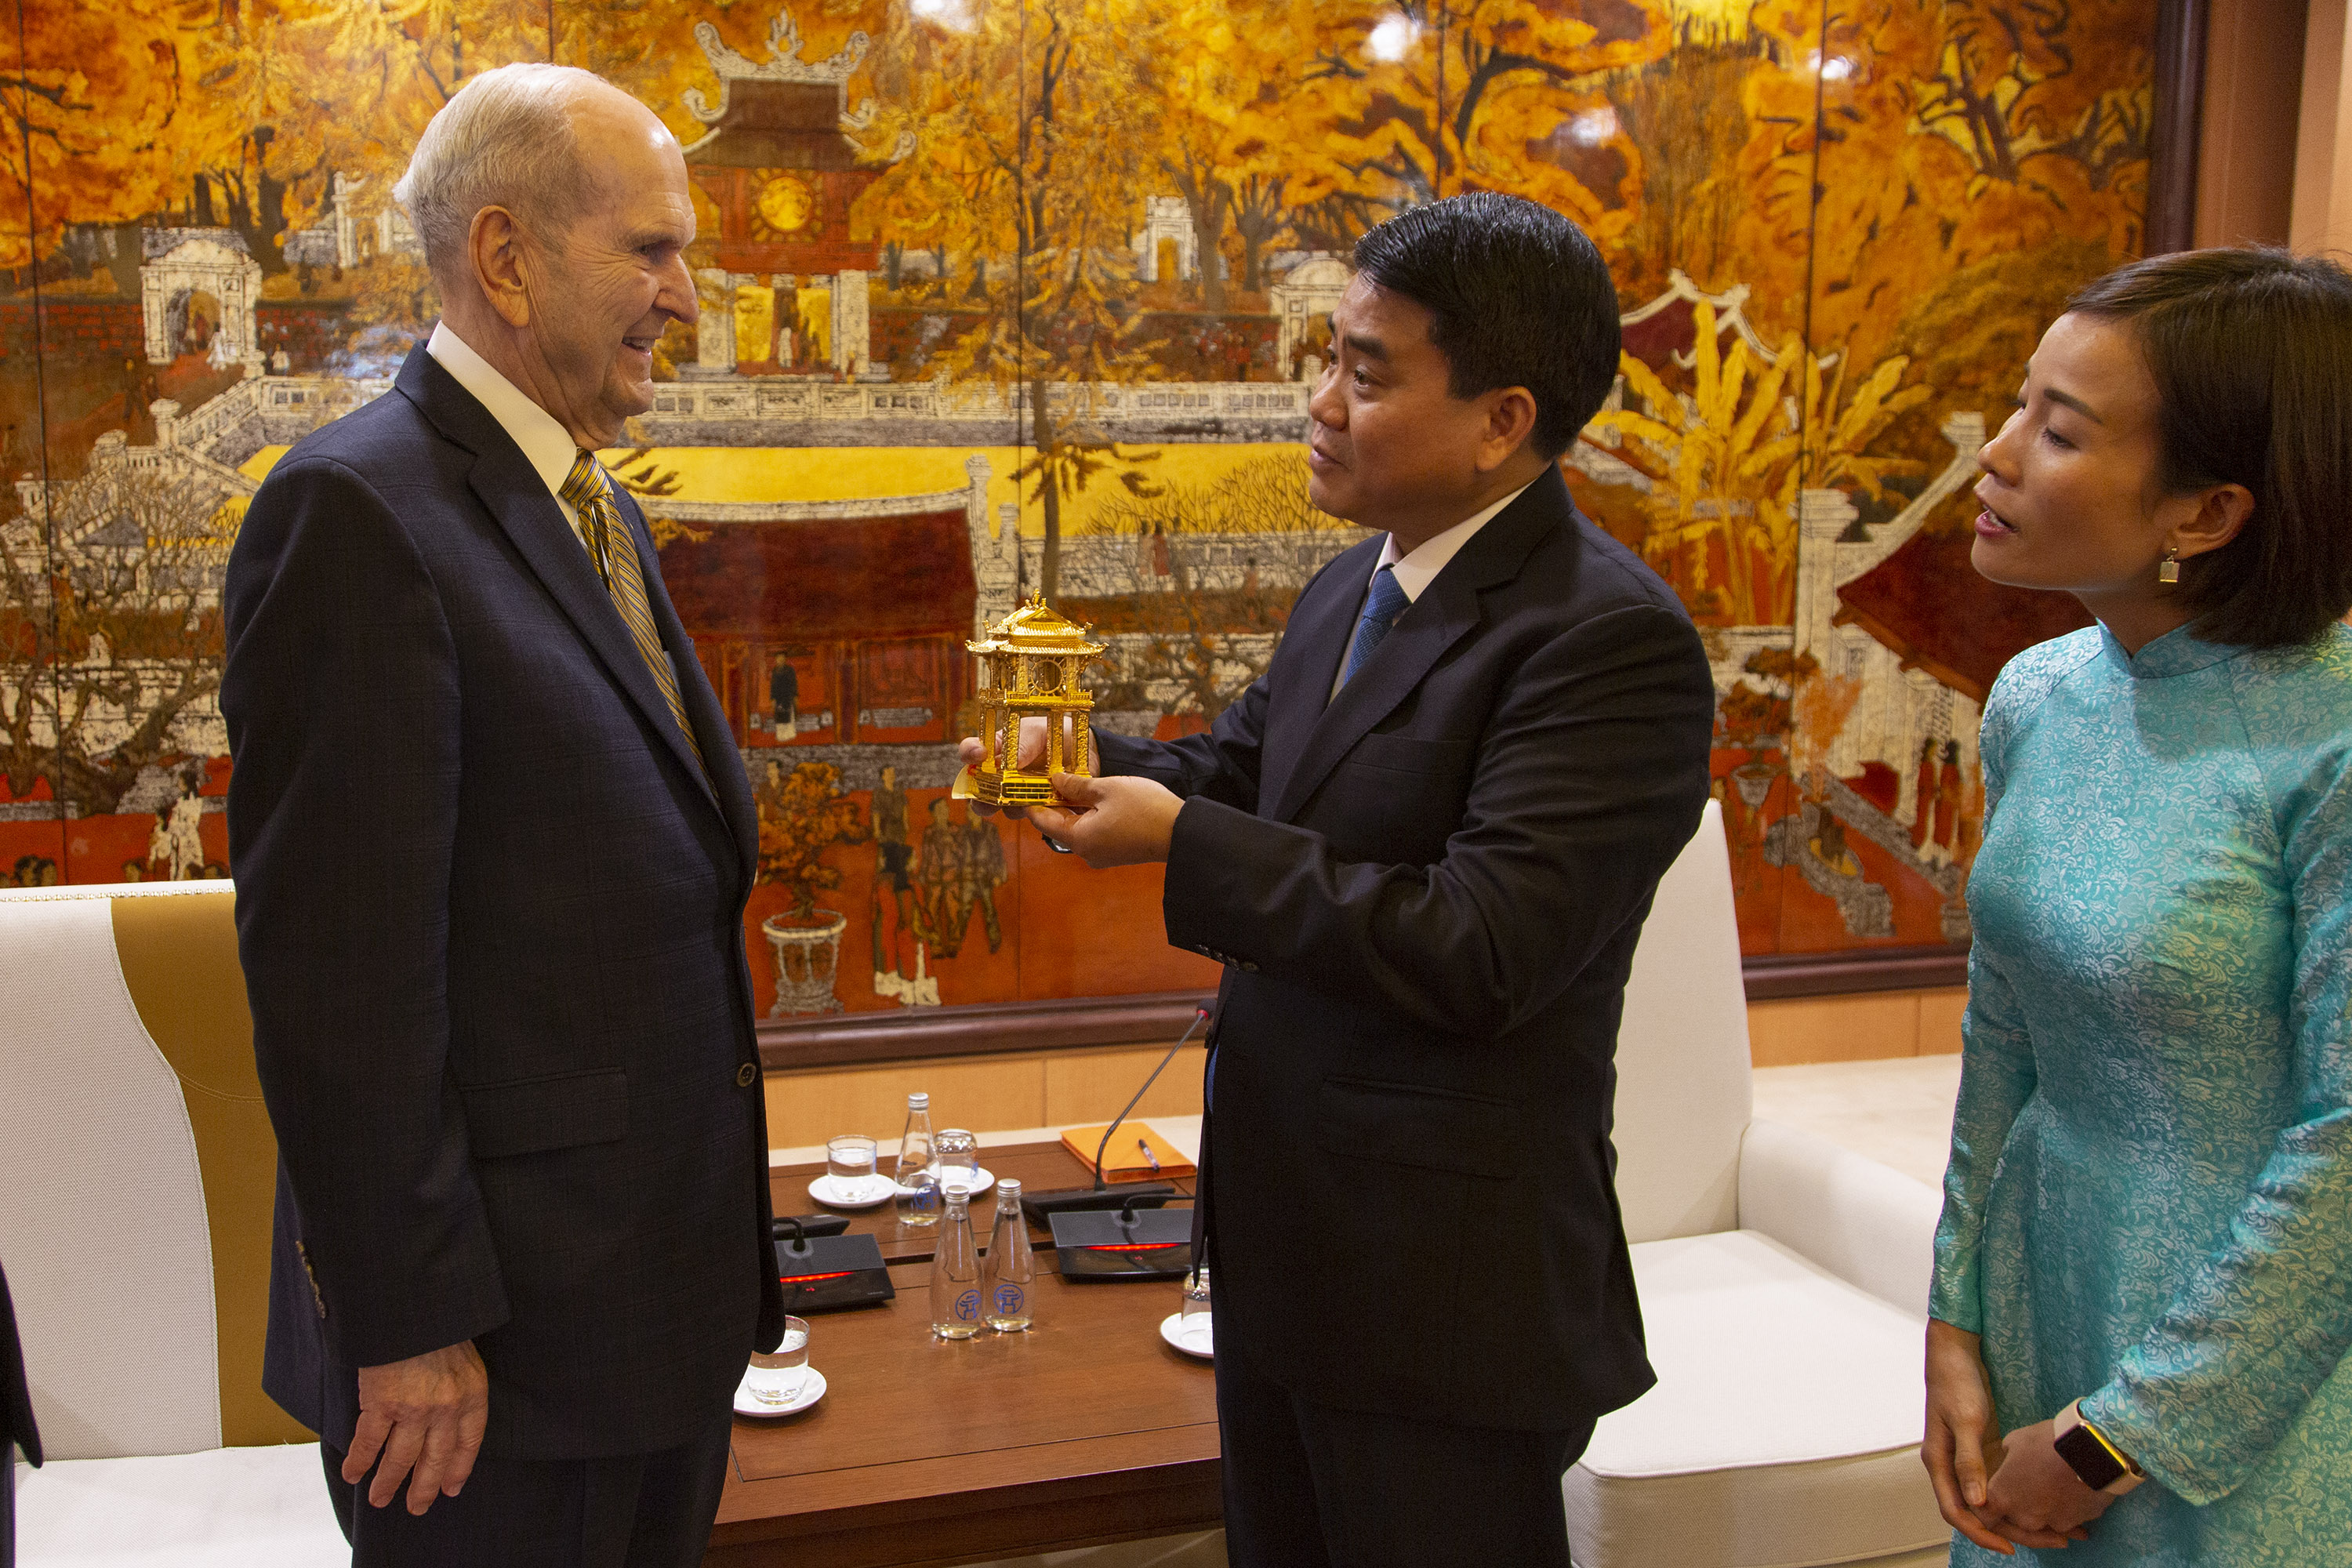 President Russell M. Nelson accepts a gift from Hanoi Mayor Nguyen Duc Chung on Monday, Nov. 18, 2019. President Nelson visited Vietnam Nov. 17-18 as part of his Southeast Asia Ministry.